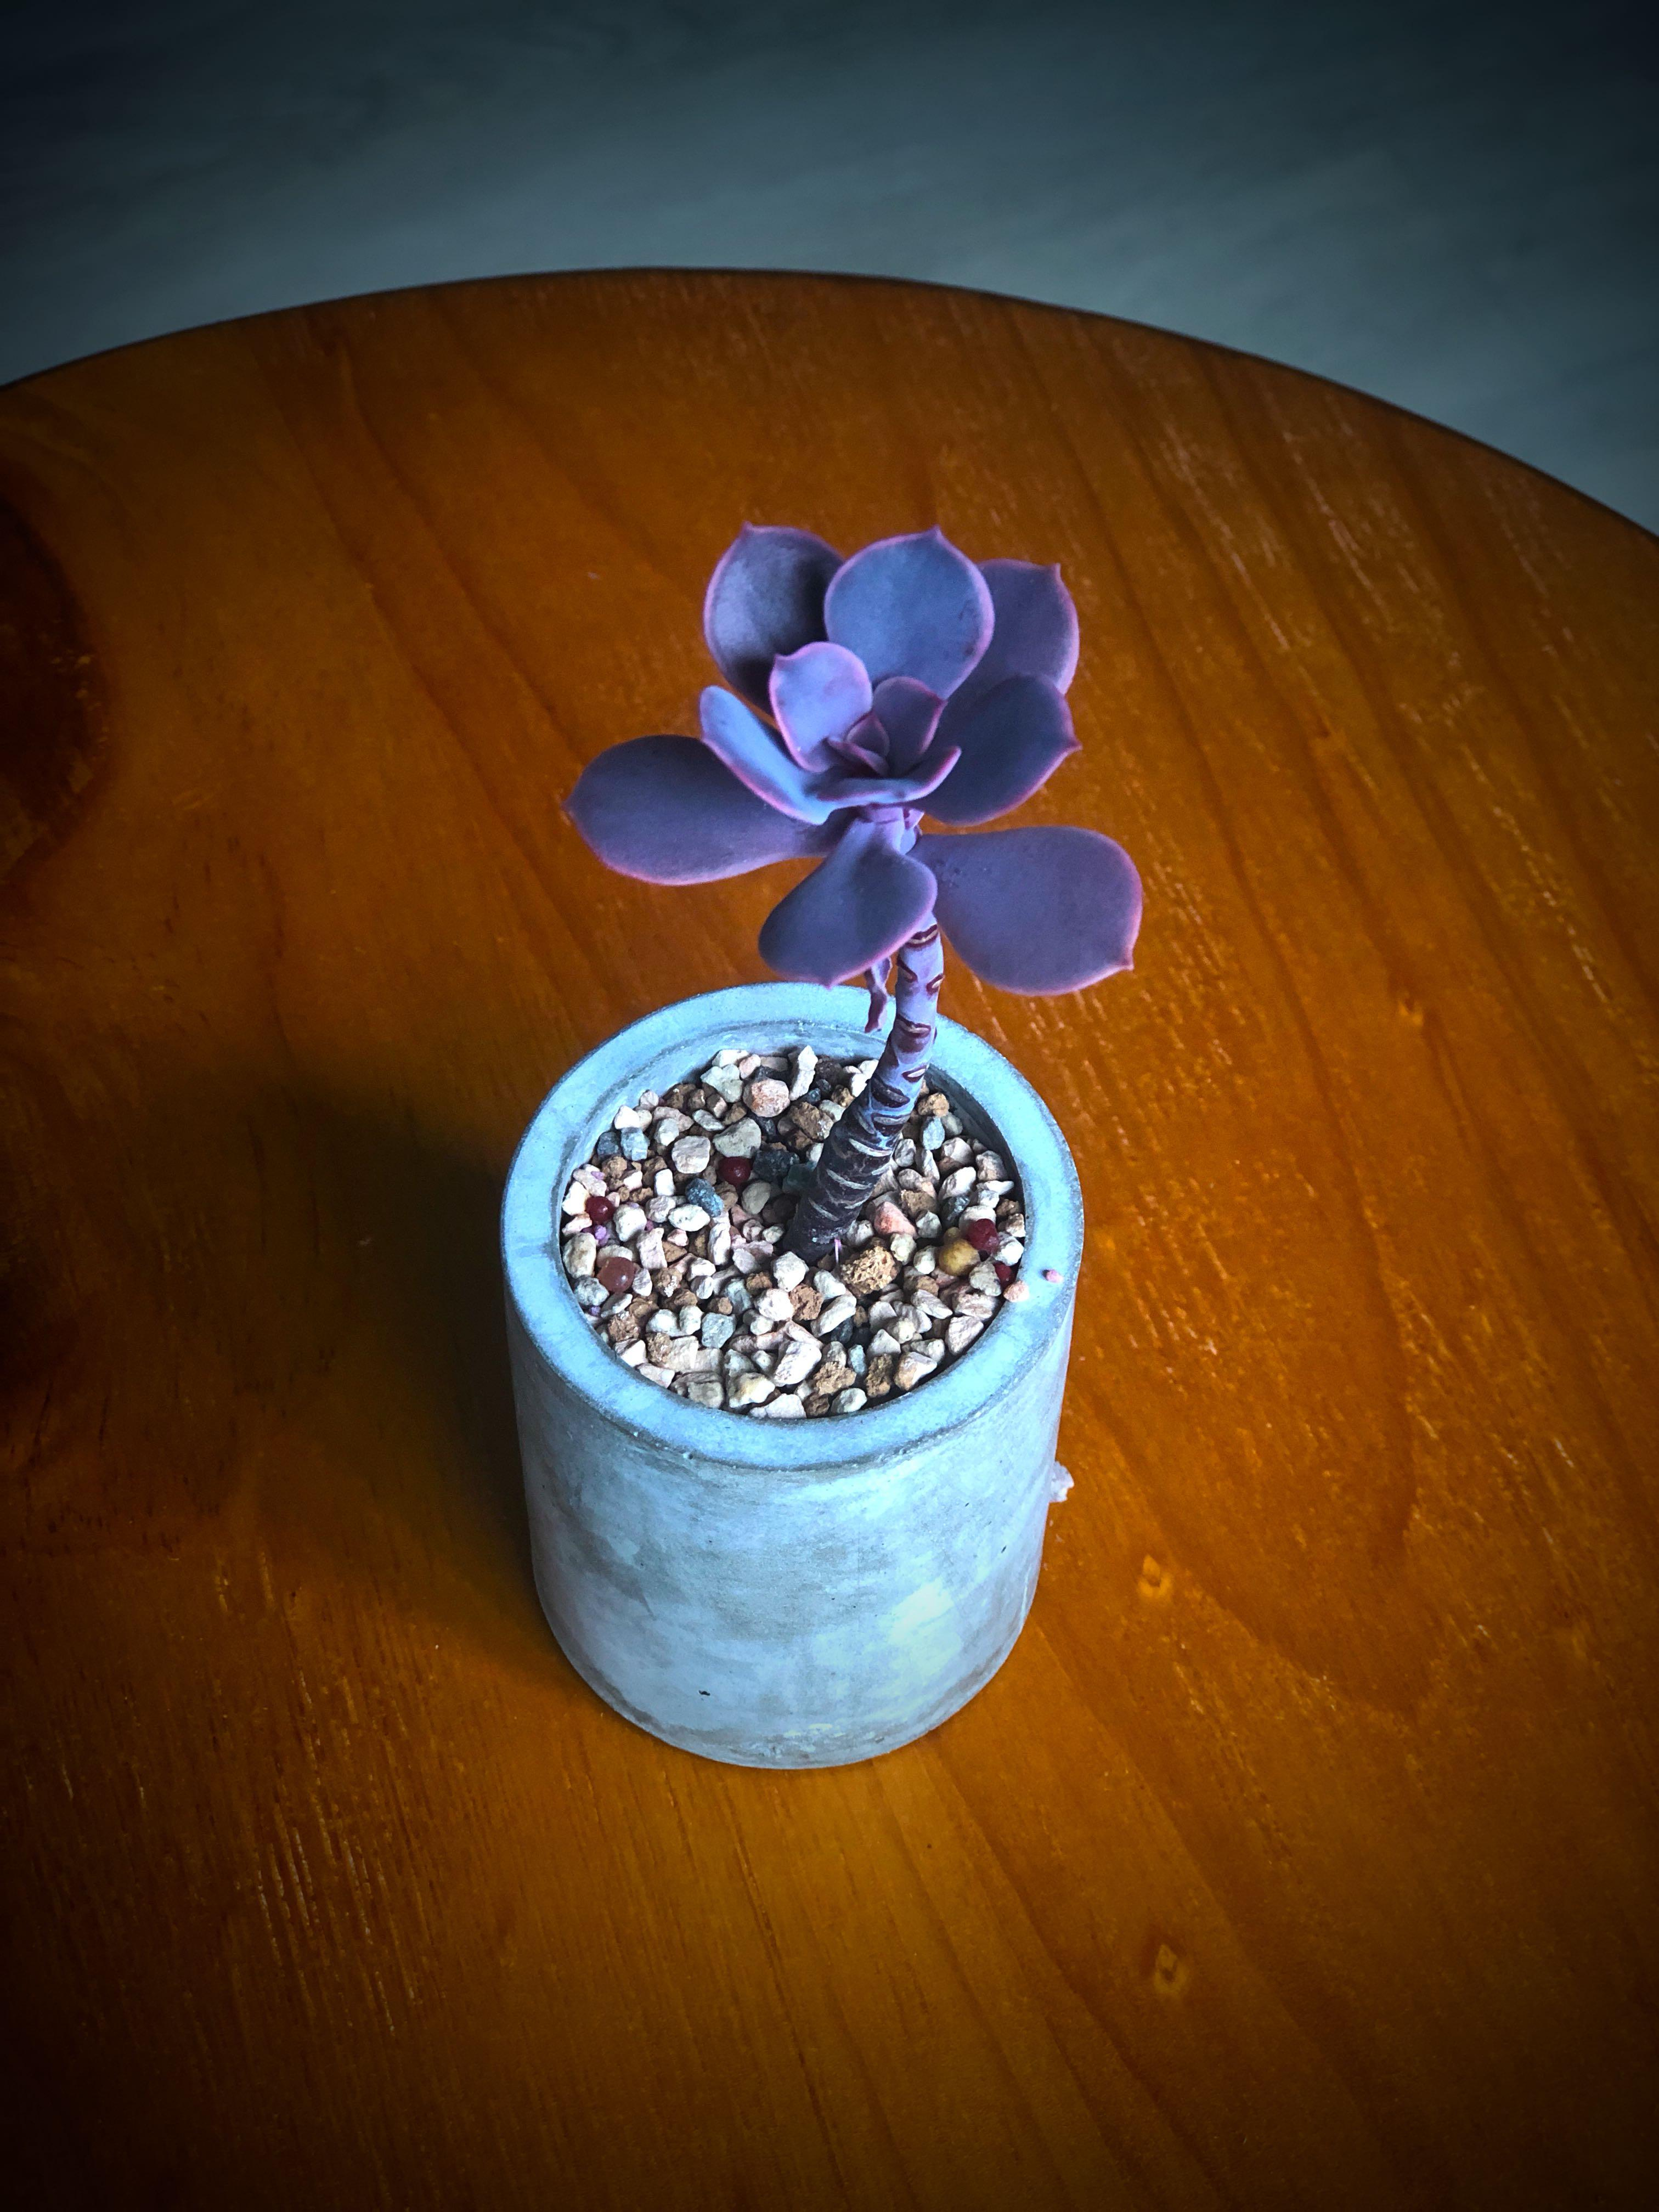 Echeveria succulent (comes with ceramic pot)